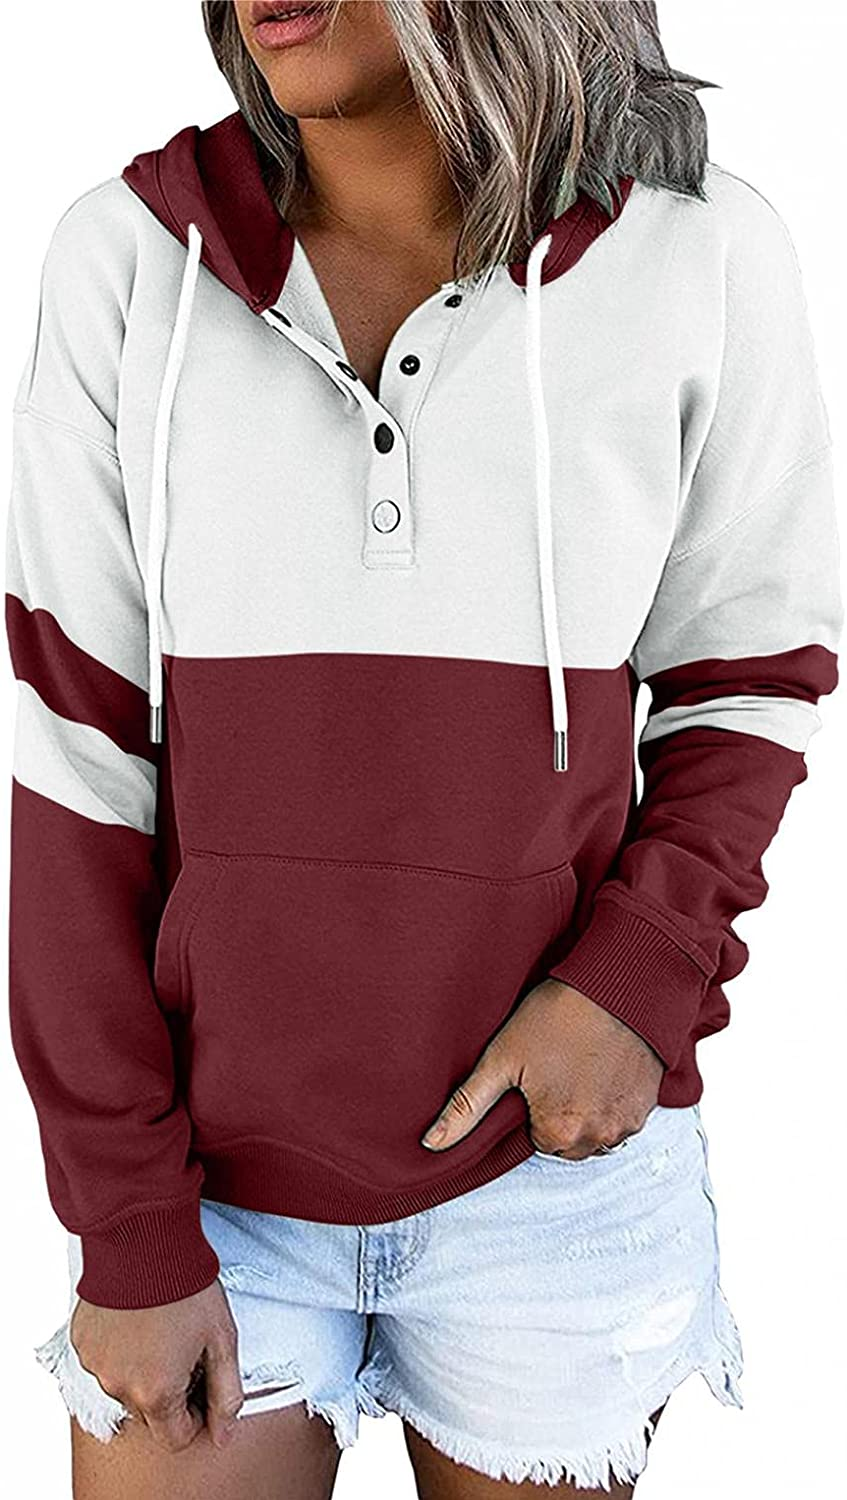 felwors Hoodies for Women, Womens Pullover Hoodies Button Down Long Sleeve Color Block Casual Sweatshirts with Pockets